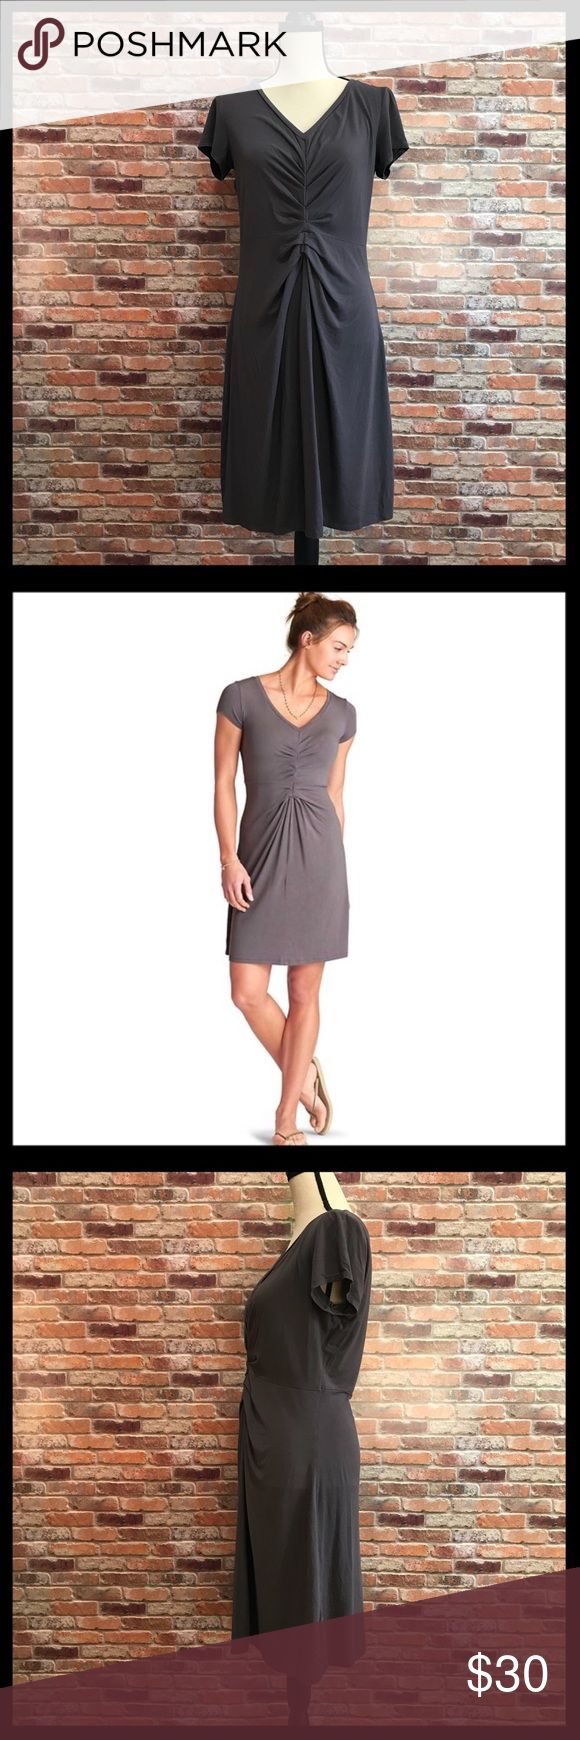 "Athleta Honey Shirred Dress Athleta Honey Shirred Dress in a size large.  Has a v-neck with shirring under the neckline and down the bodice.  Measures approximately 17 1/2"" armpit to armpit, 41"" in length.  94% modal, 6% spandex.  In excellent condition. Athleta Dresses Midi"